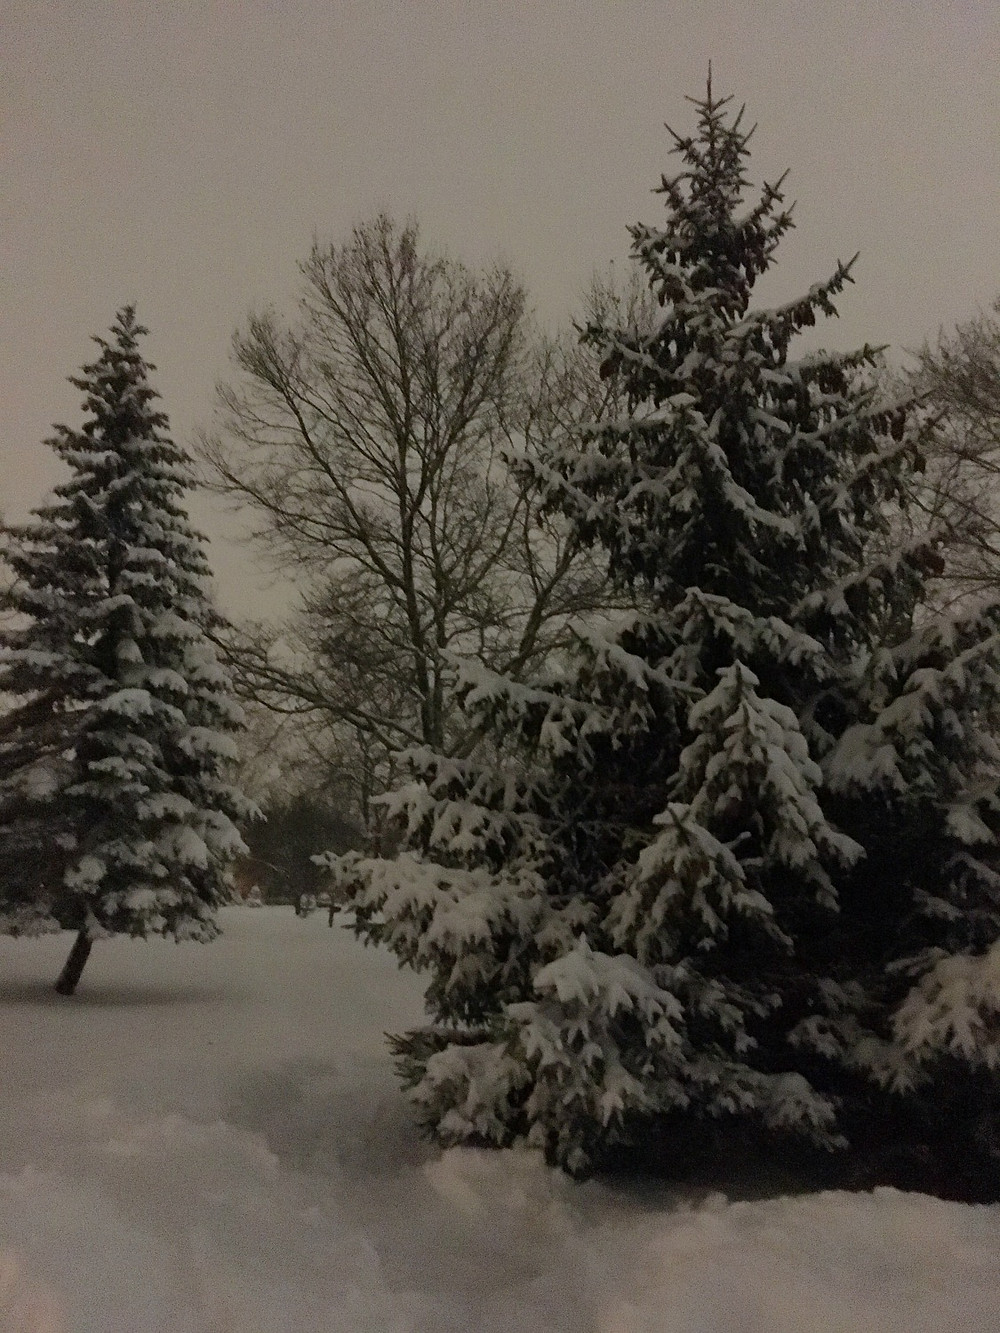 Wintery scene with pines. Photo by Diana Dinverno